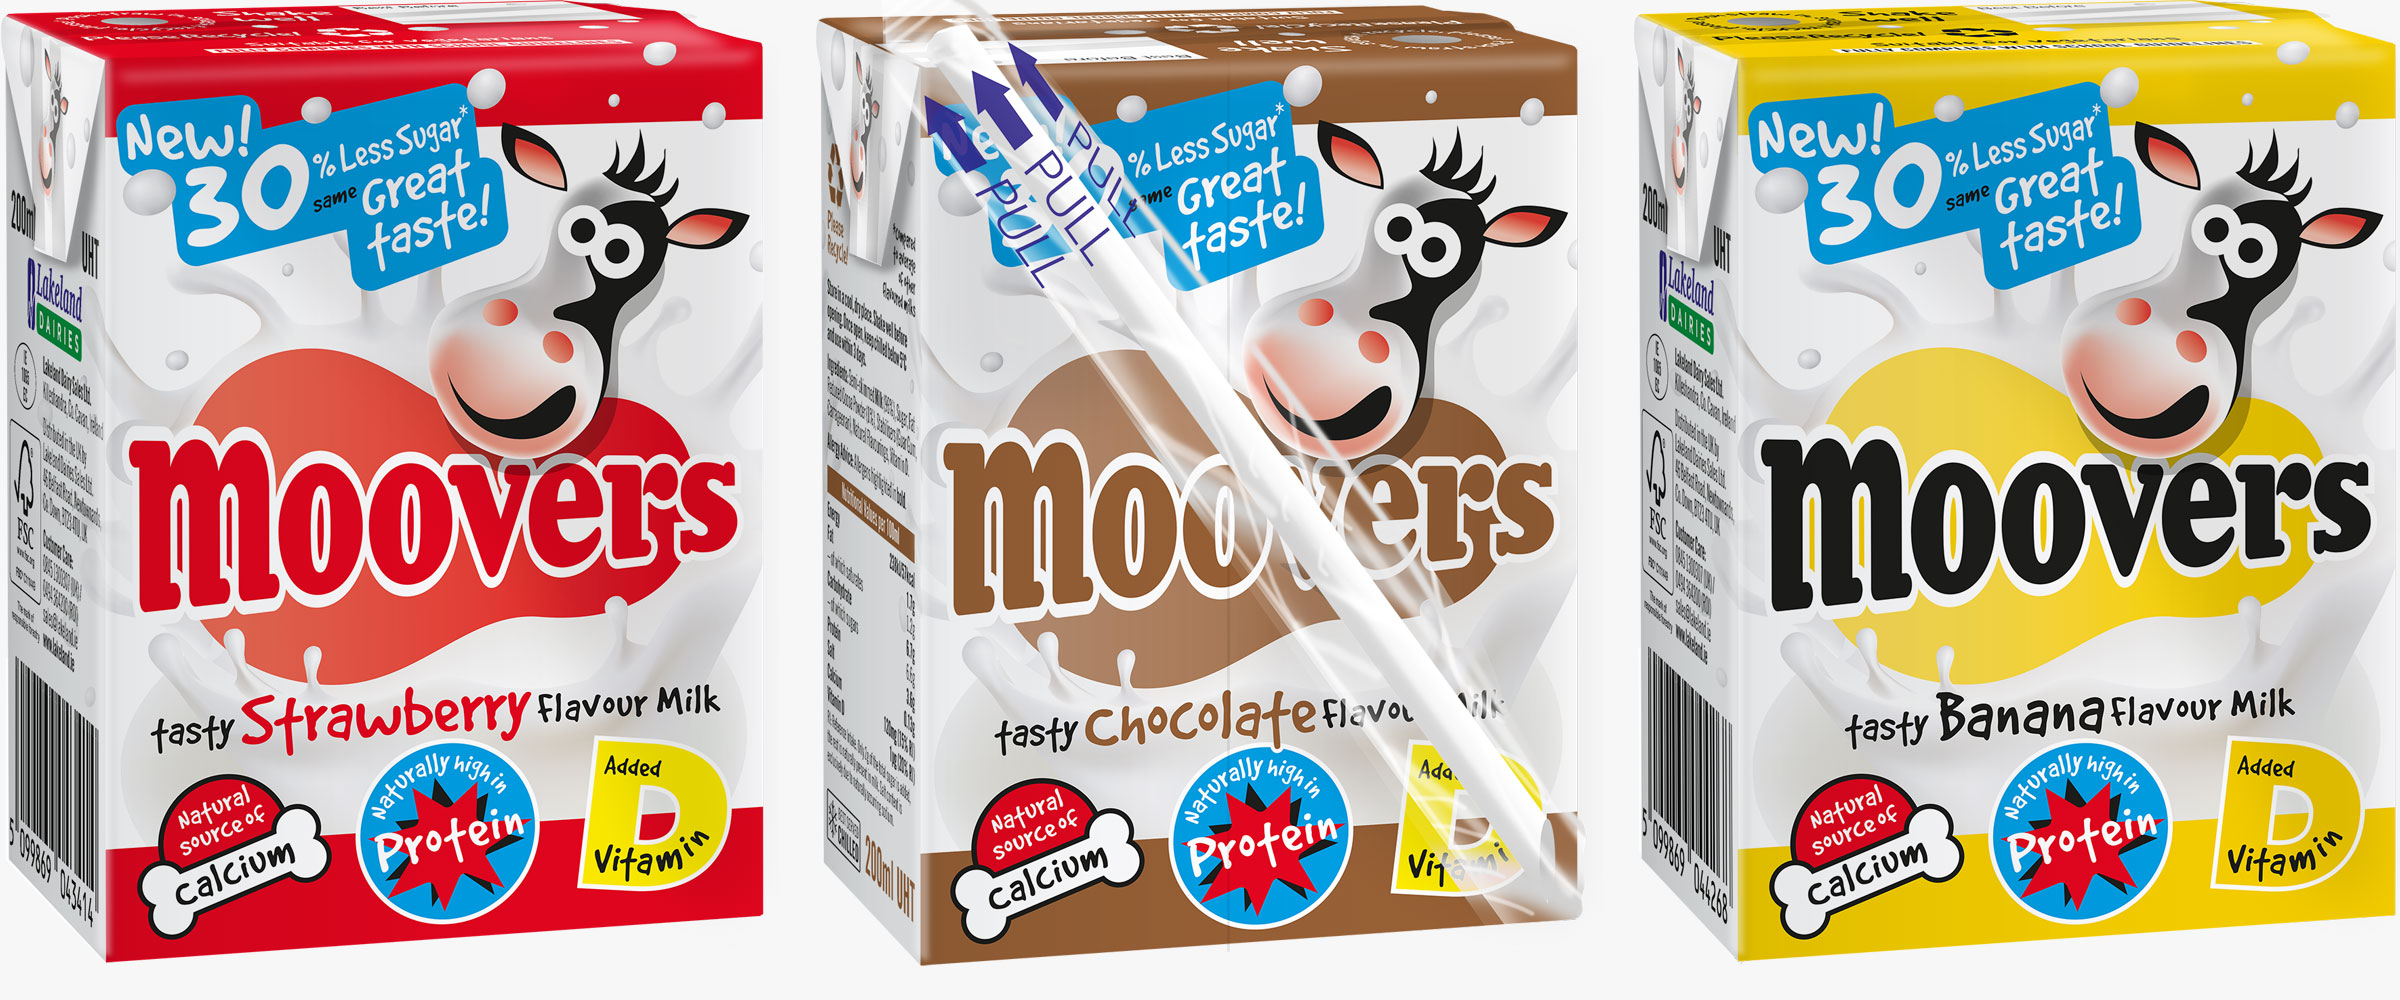 Moovers 200ml packs